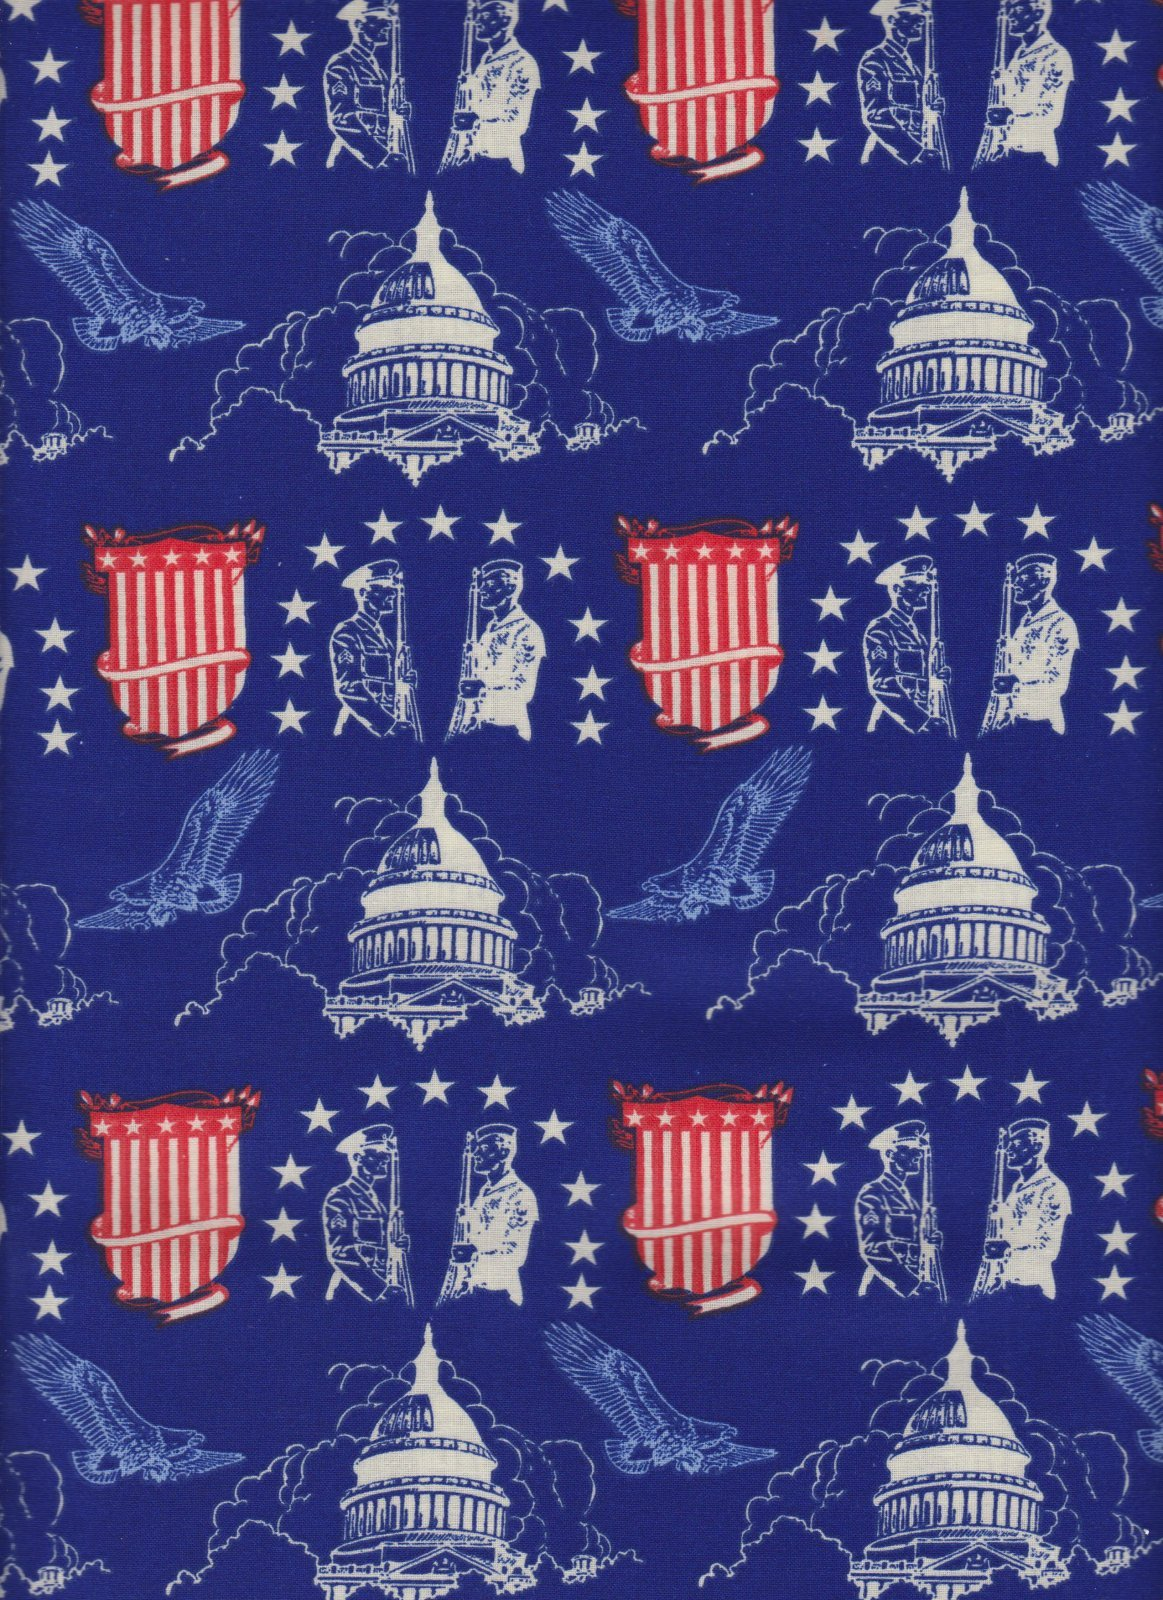 Capitol Building Blue and Red Fabric